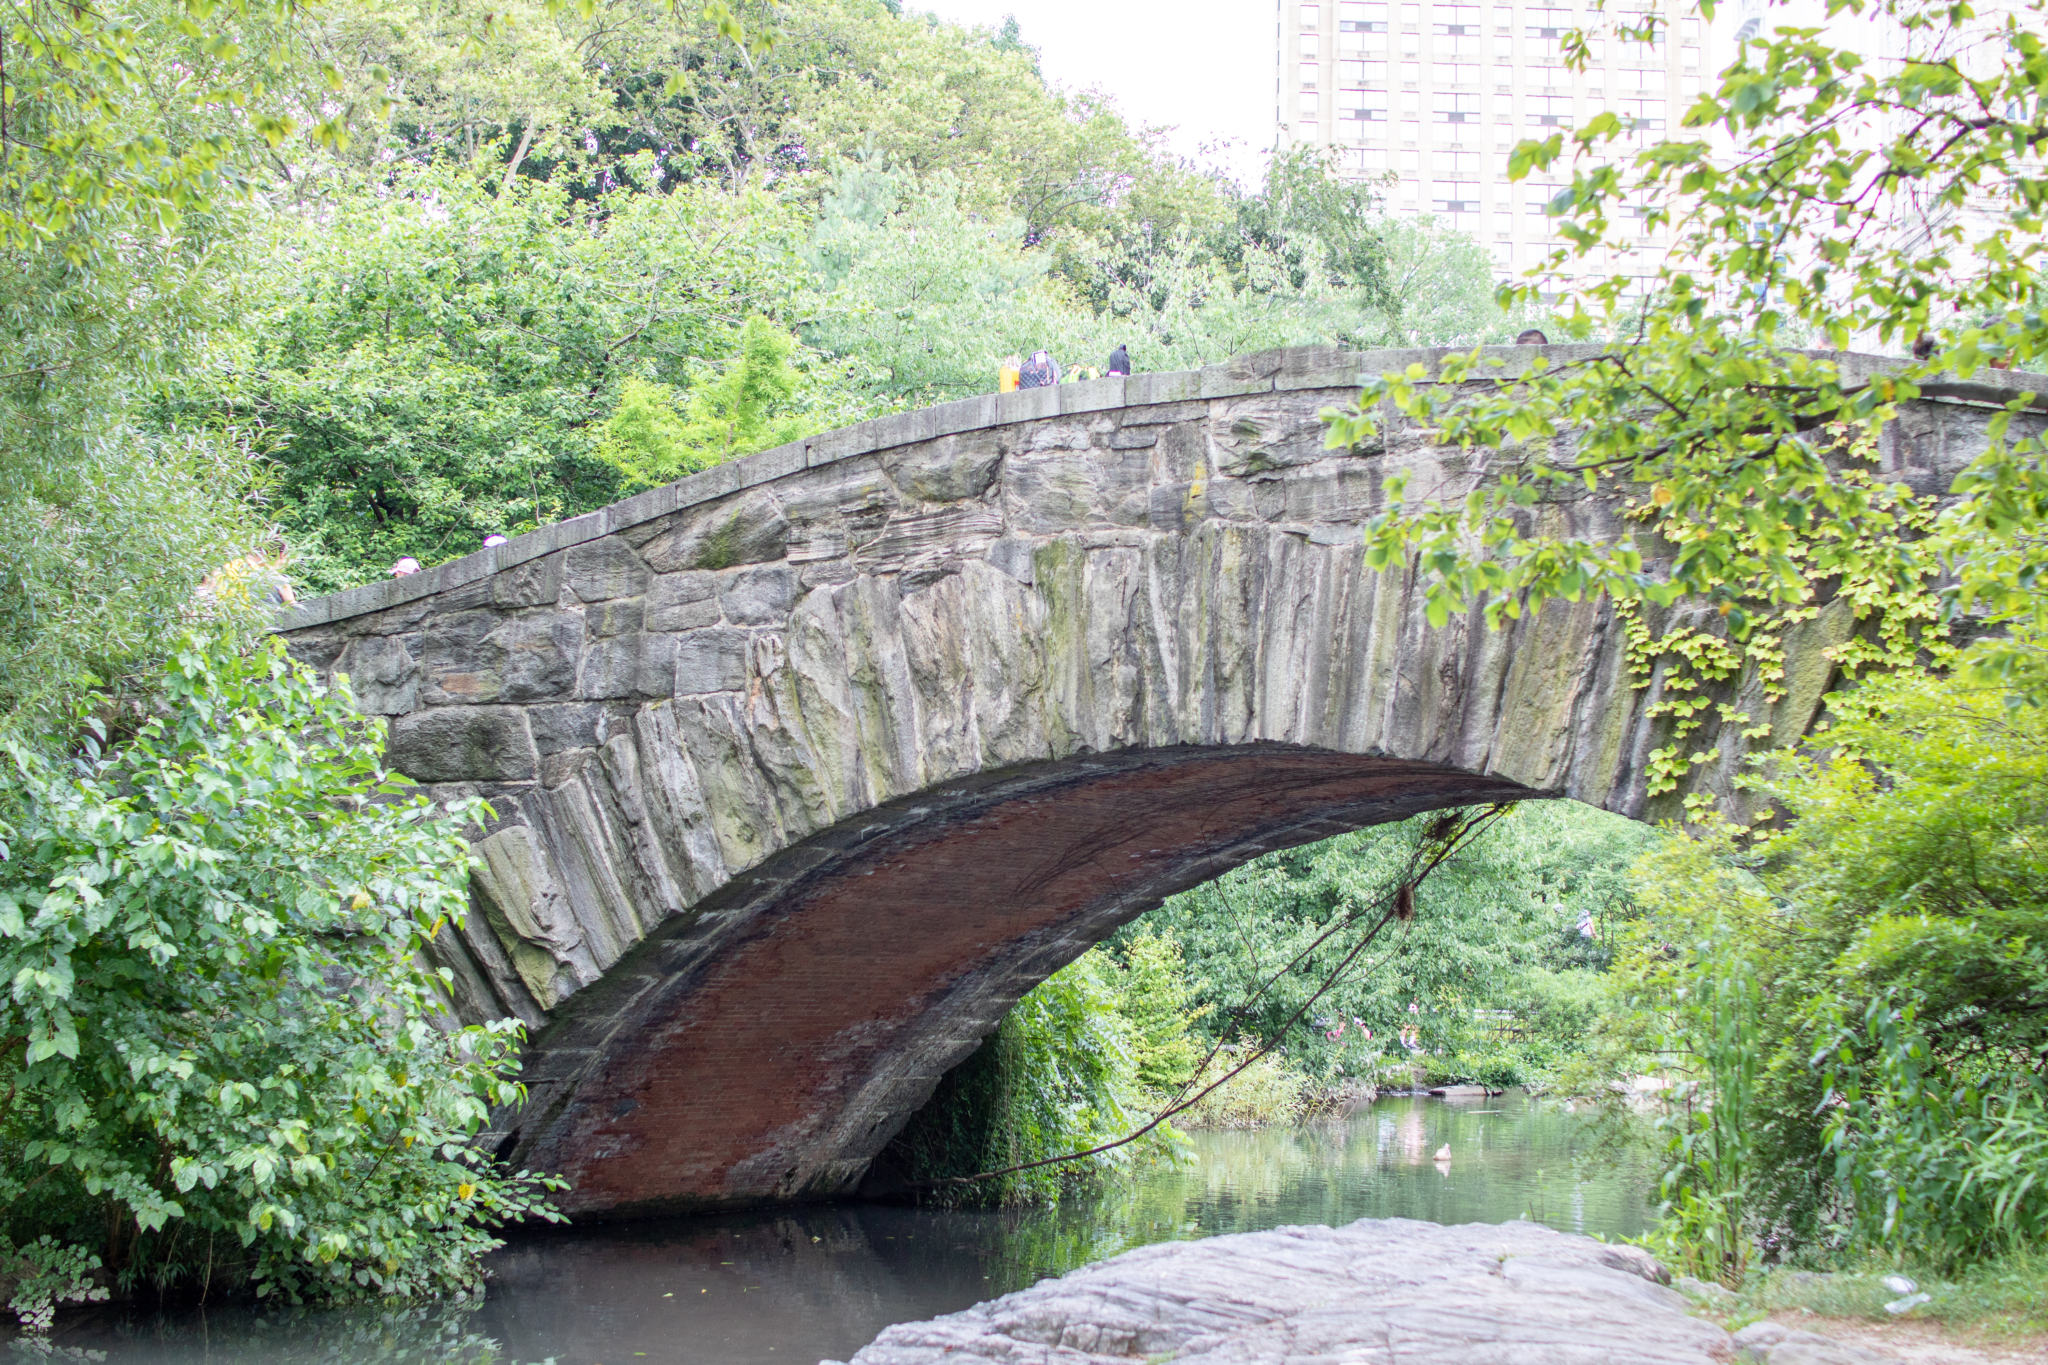 under gapstow bridge in central park NY